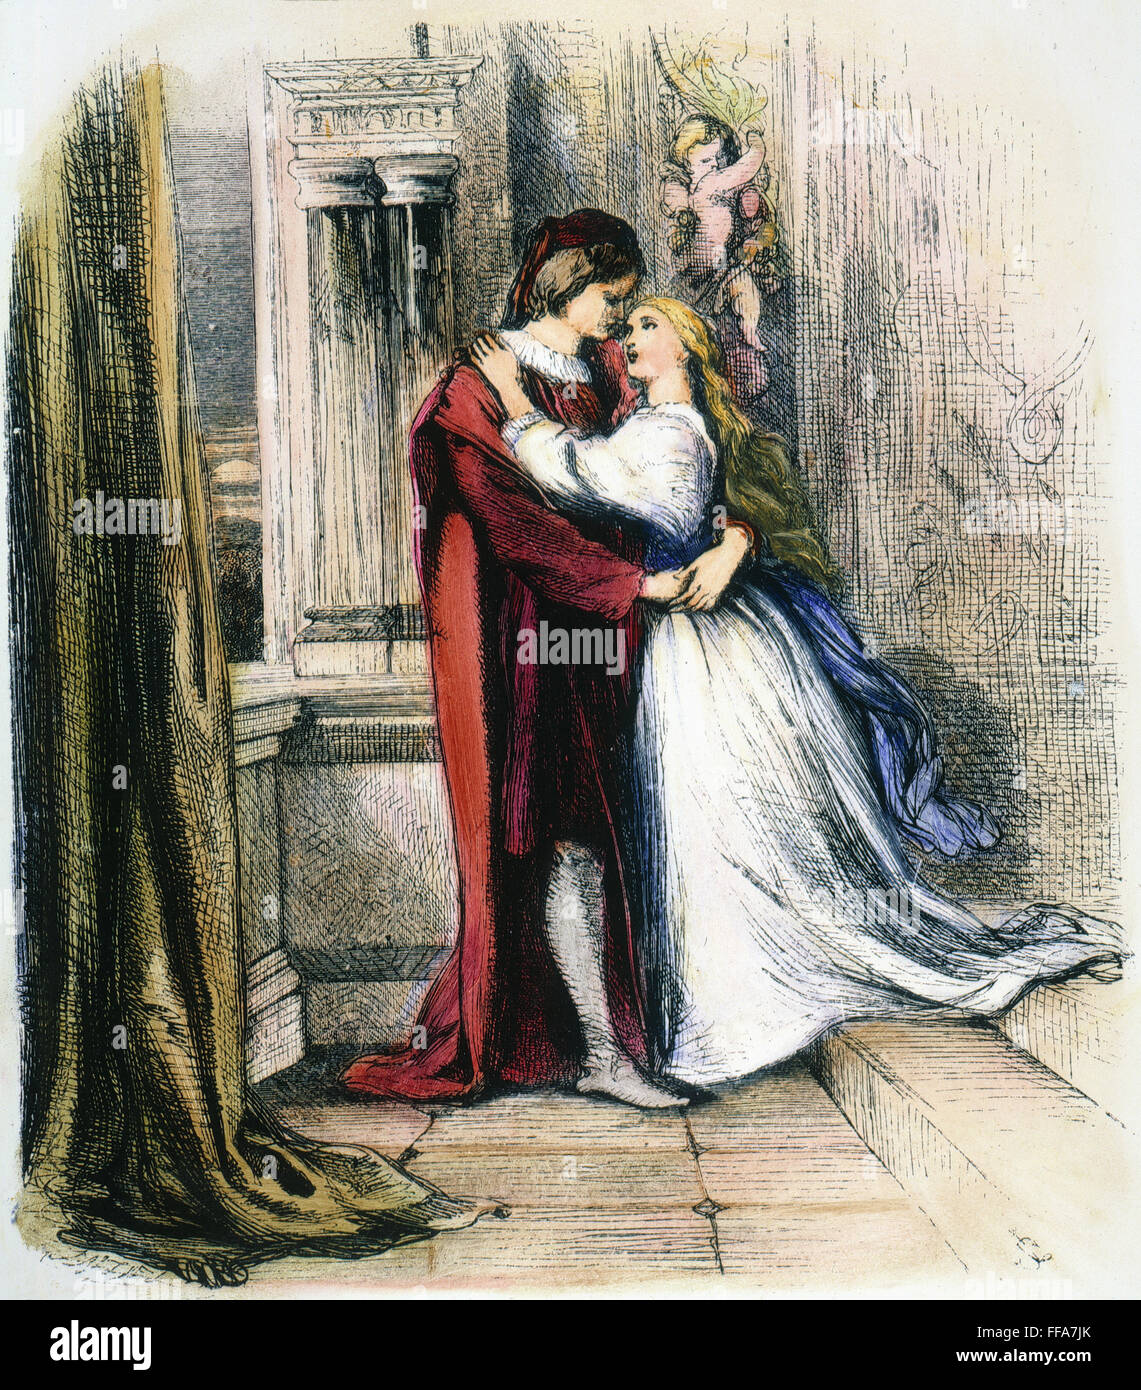 "a comparison of romeo and juliet in the balcony scene by william shakespeare Over the past few weeks a lively discussion has been going on at the shakespeare noticeboard shaksper under the title ""balcony"" the so-called balcony scene in romeo and juliet is probably shakespeare's most famous single scene, and no wonder as it's the one where romeo and juliet, at night ."